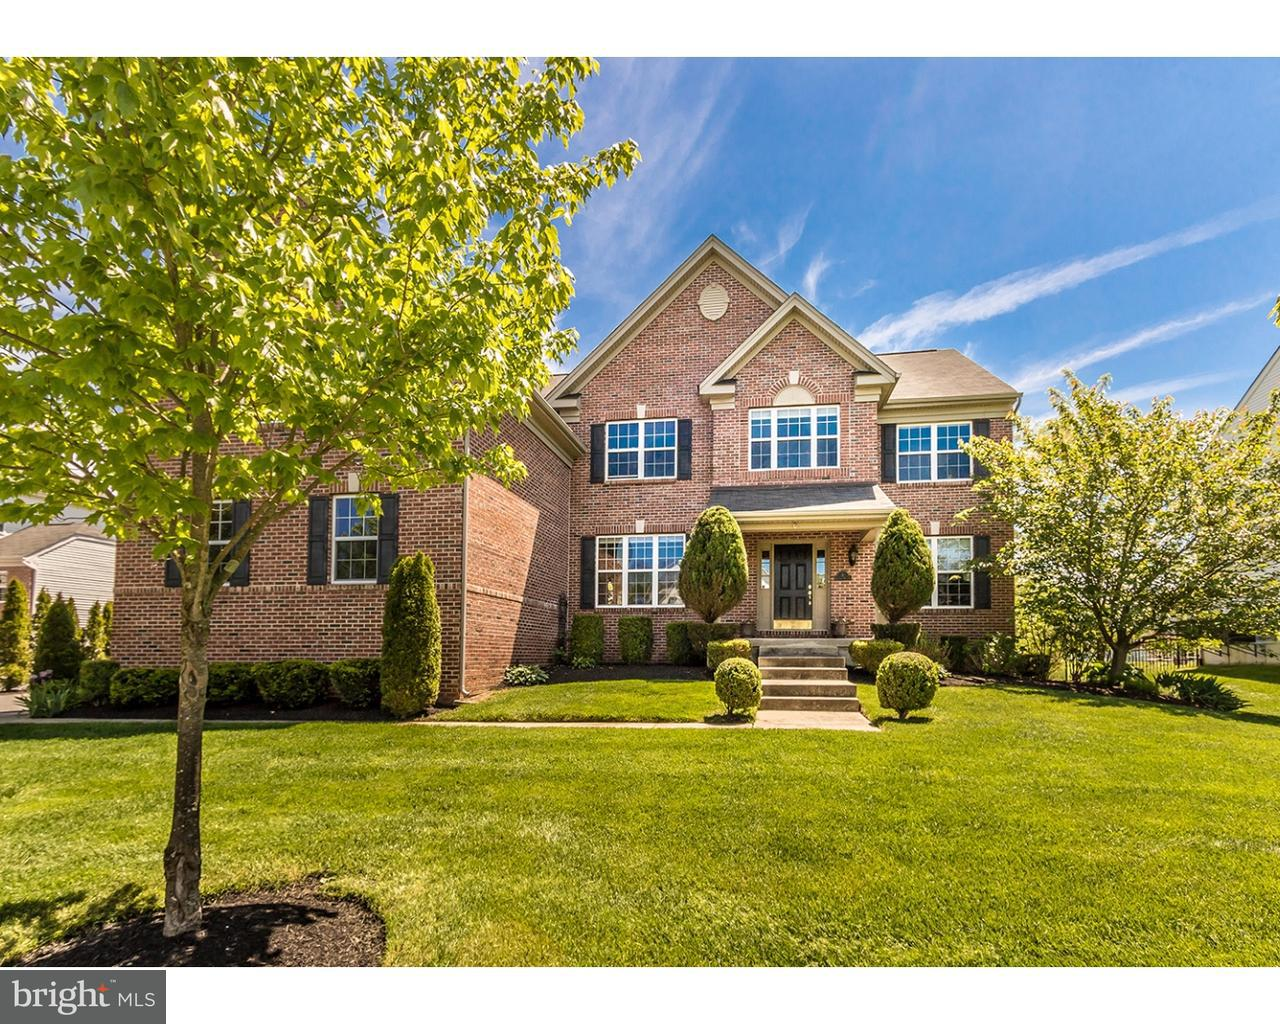 Single Family Home for Sale at 6 CRANBURY HILL Court Mount Laurel, New Jersey 08054 United States